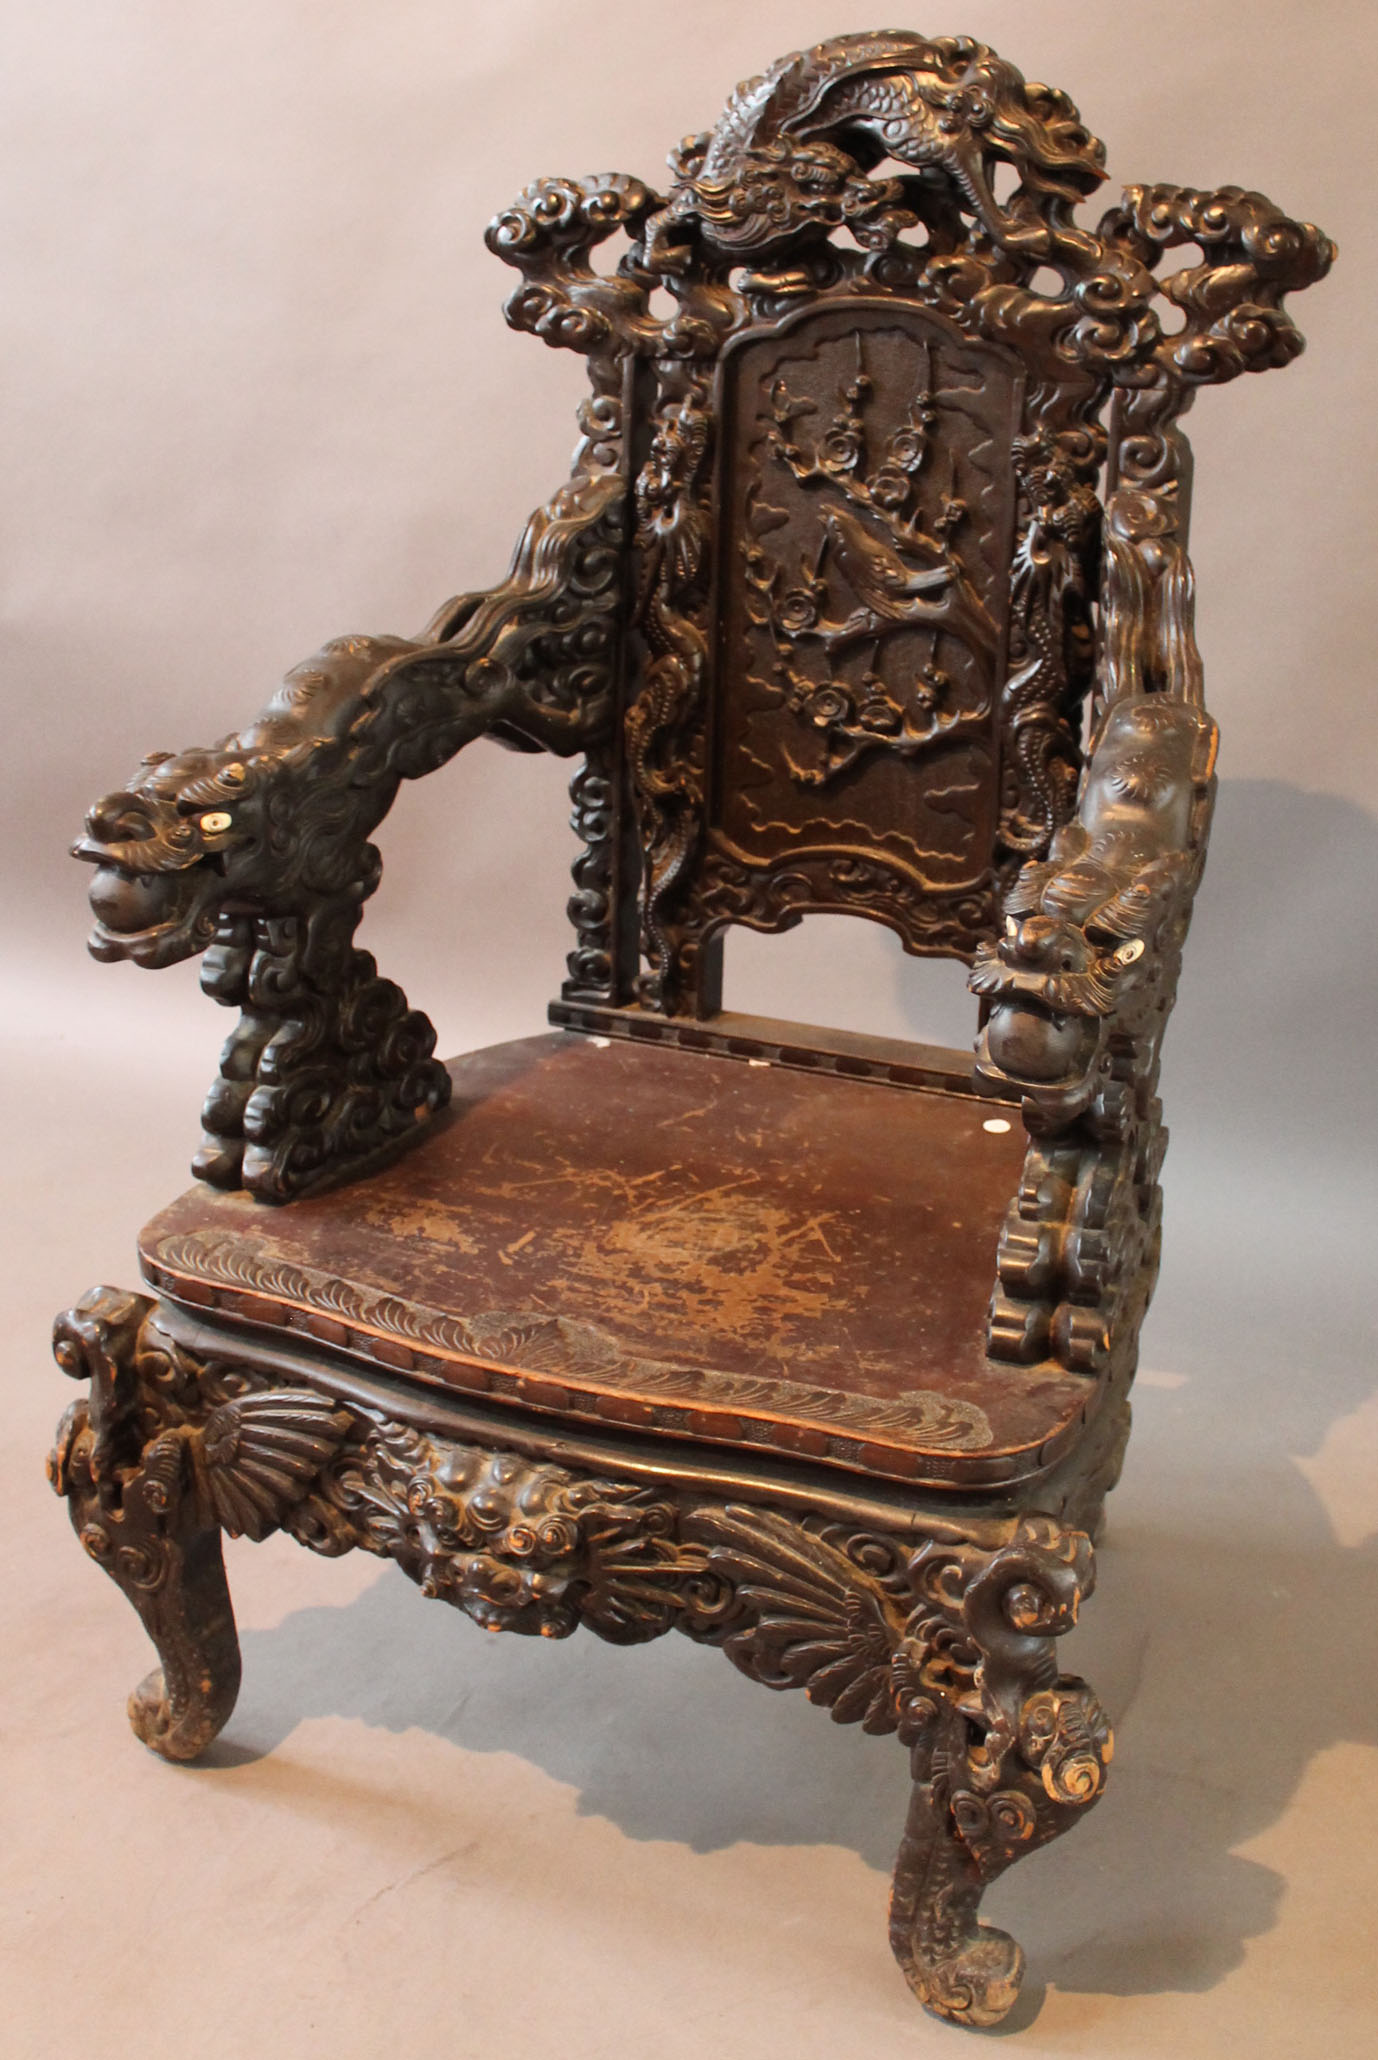 Lot 1750 - A Chinese carved Hongmu style - A Chinese Carved Hongmu Style 'dragon' Throne Chair, Early To Mid